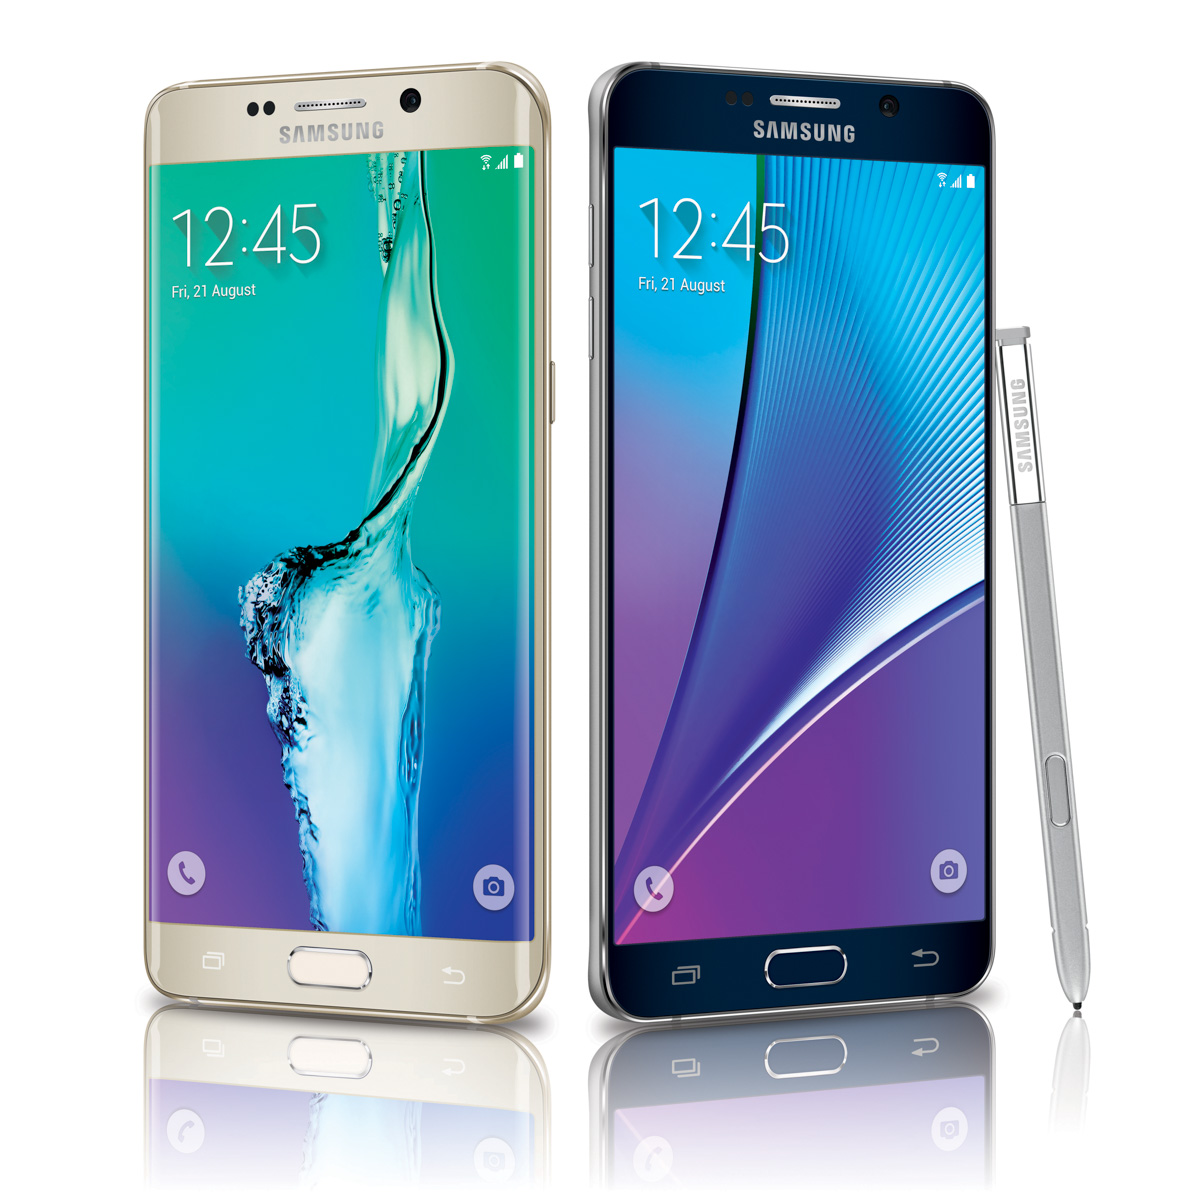 The Samsung Galaxy S6 Edge+ and Galaxy Note 5 launches August 21, 2015